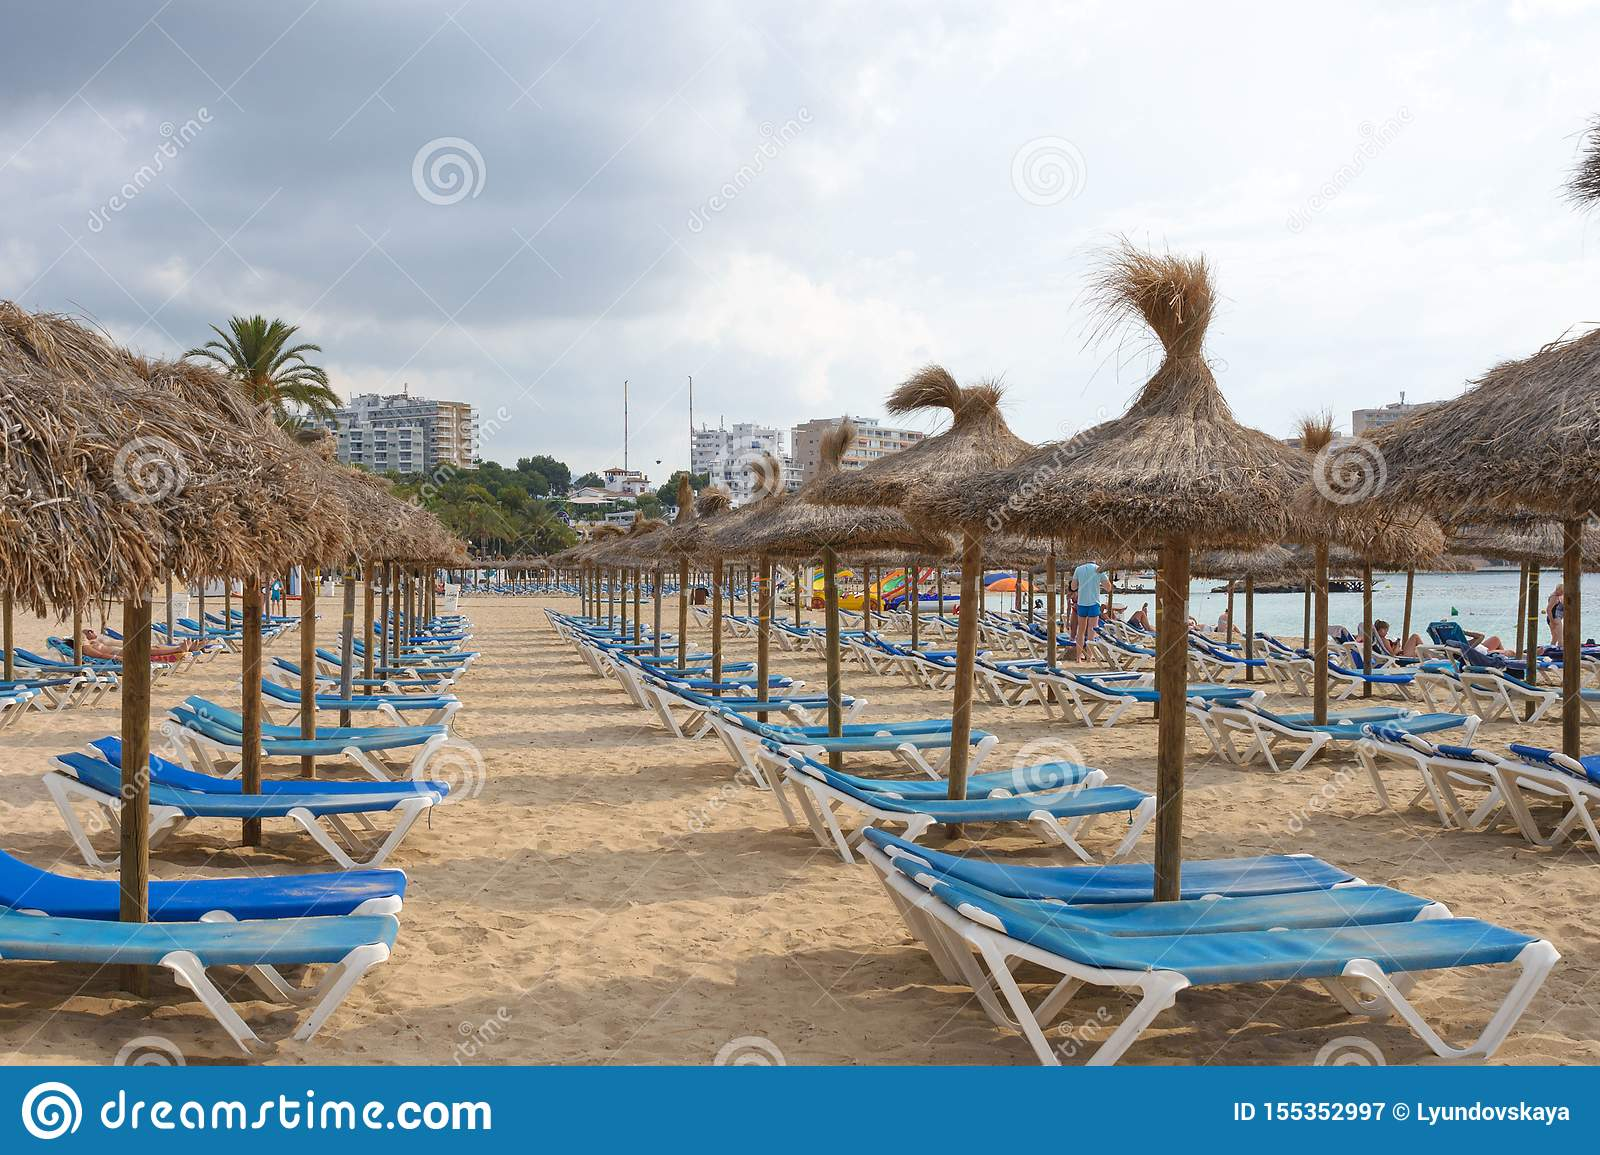 Mallorca traditional thatched umbrellas and blue sunbeds on the sandy beach of Magaluf resort. Balearic Islands